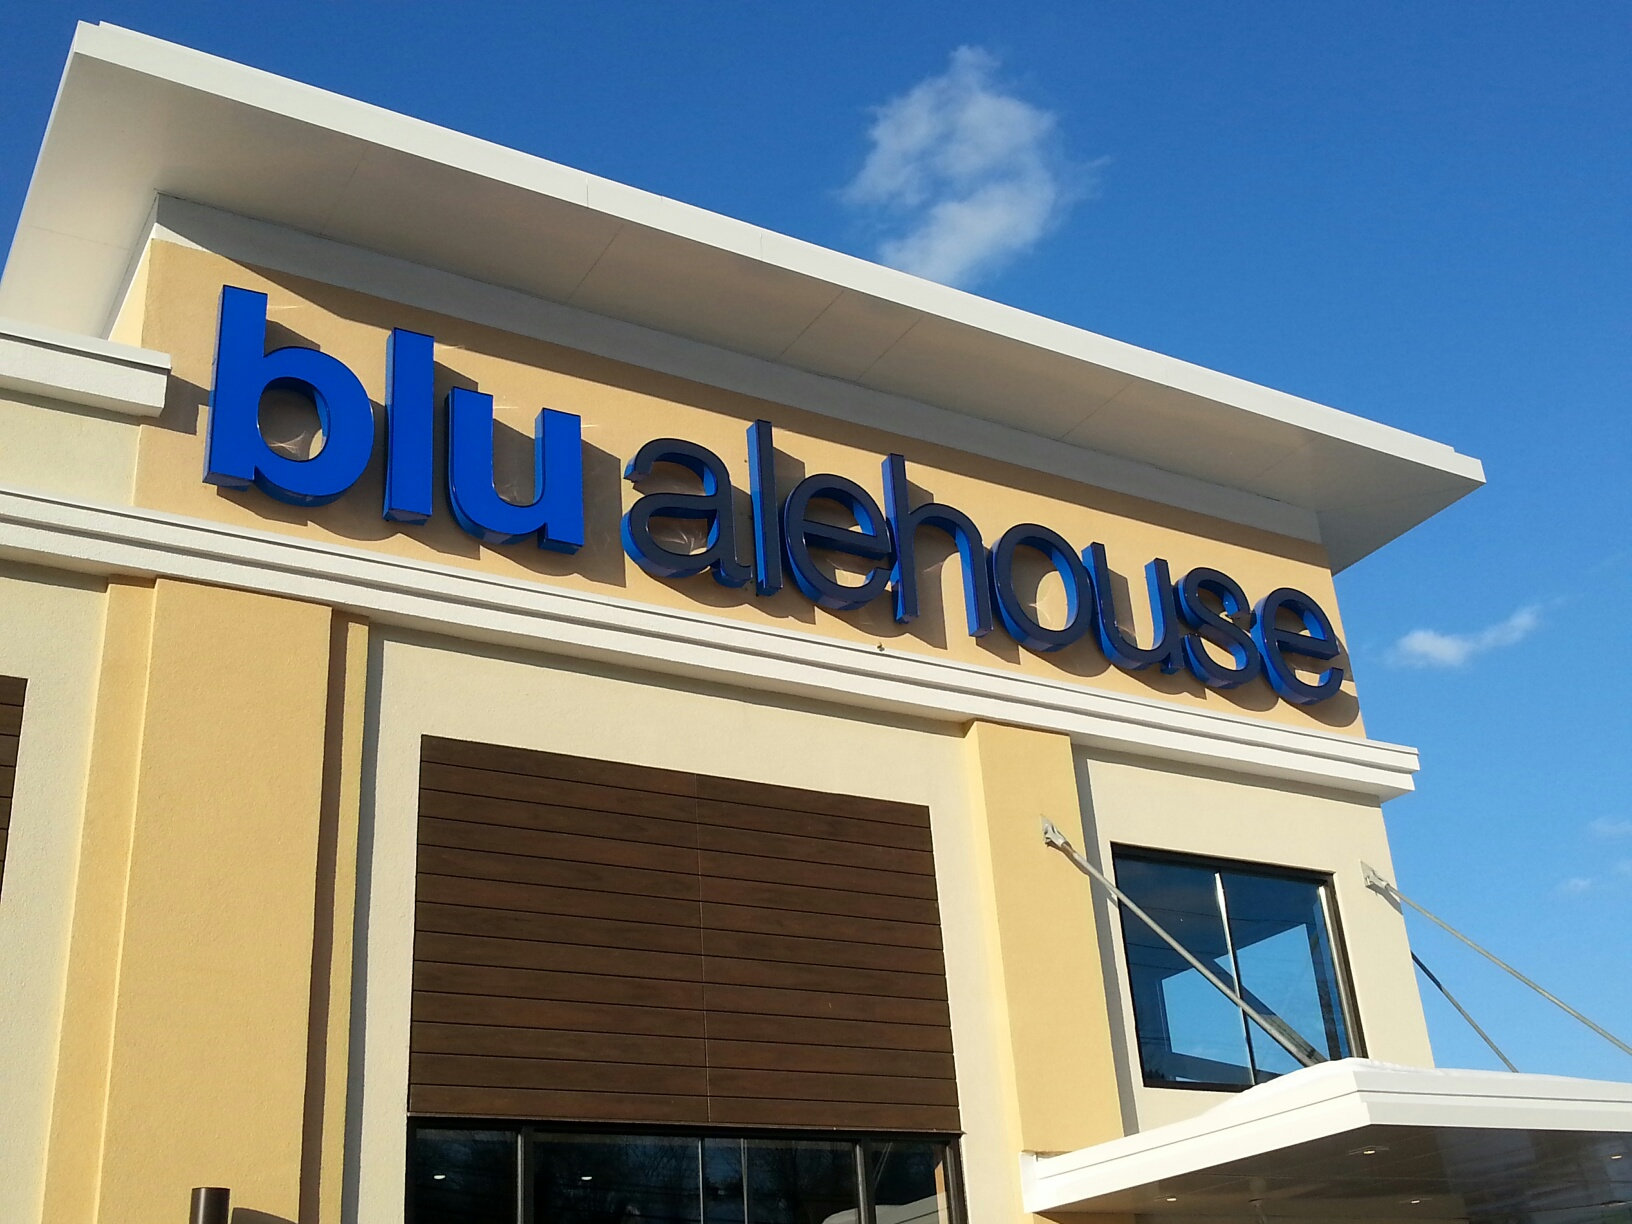 Blu Alehouse Channel letters